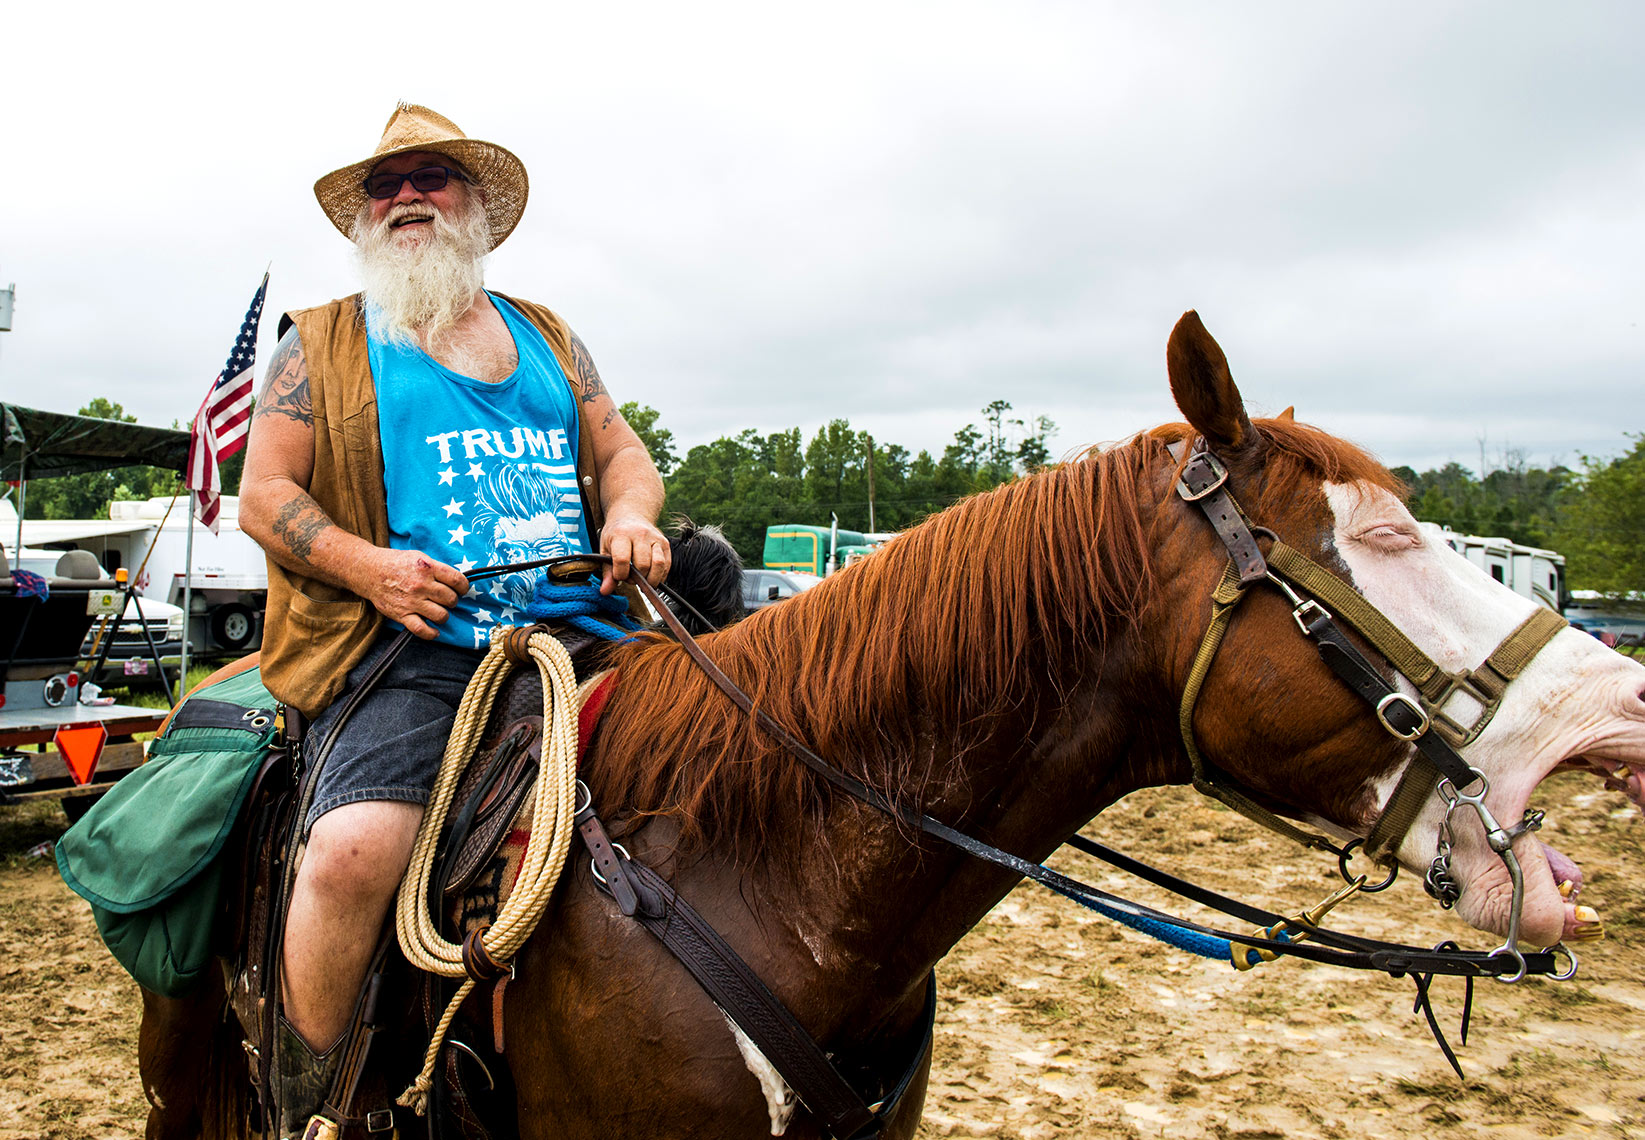 Trump supporter Mule days Benson Raleigh editorial photography